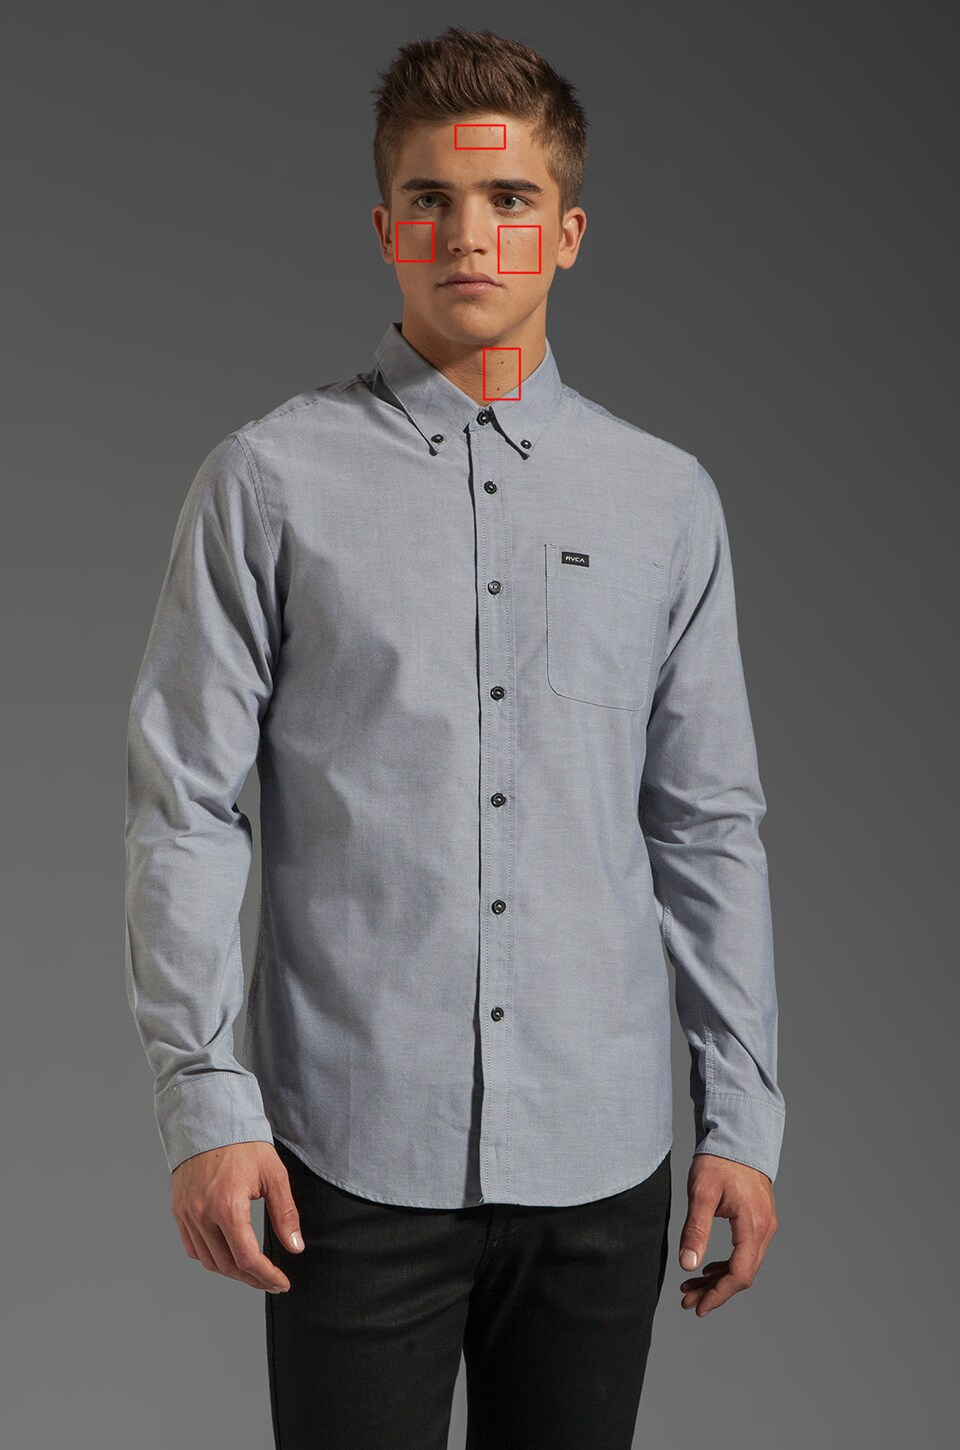 RVCA That'll Do Oxford L/S Shirt in Pavement